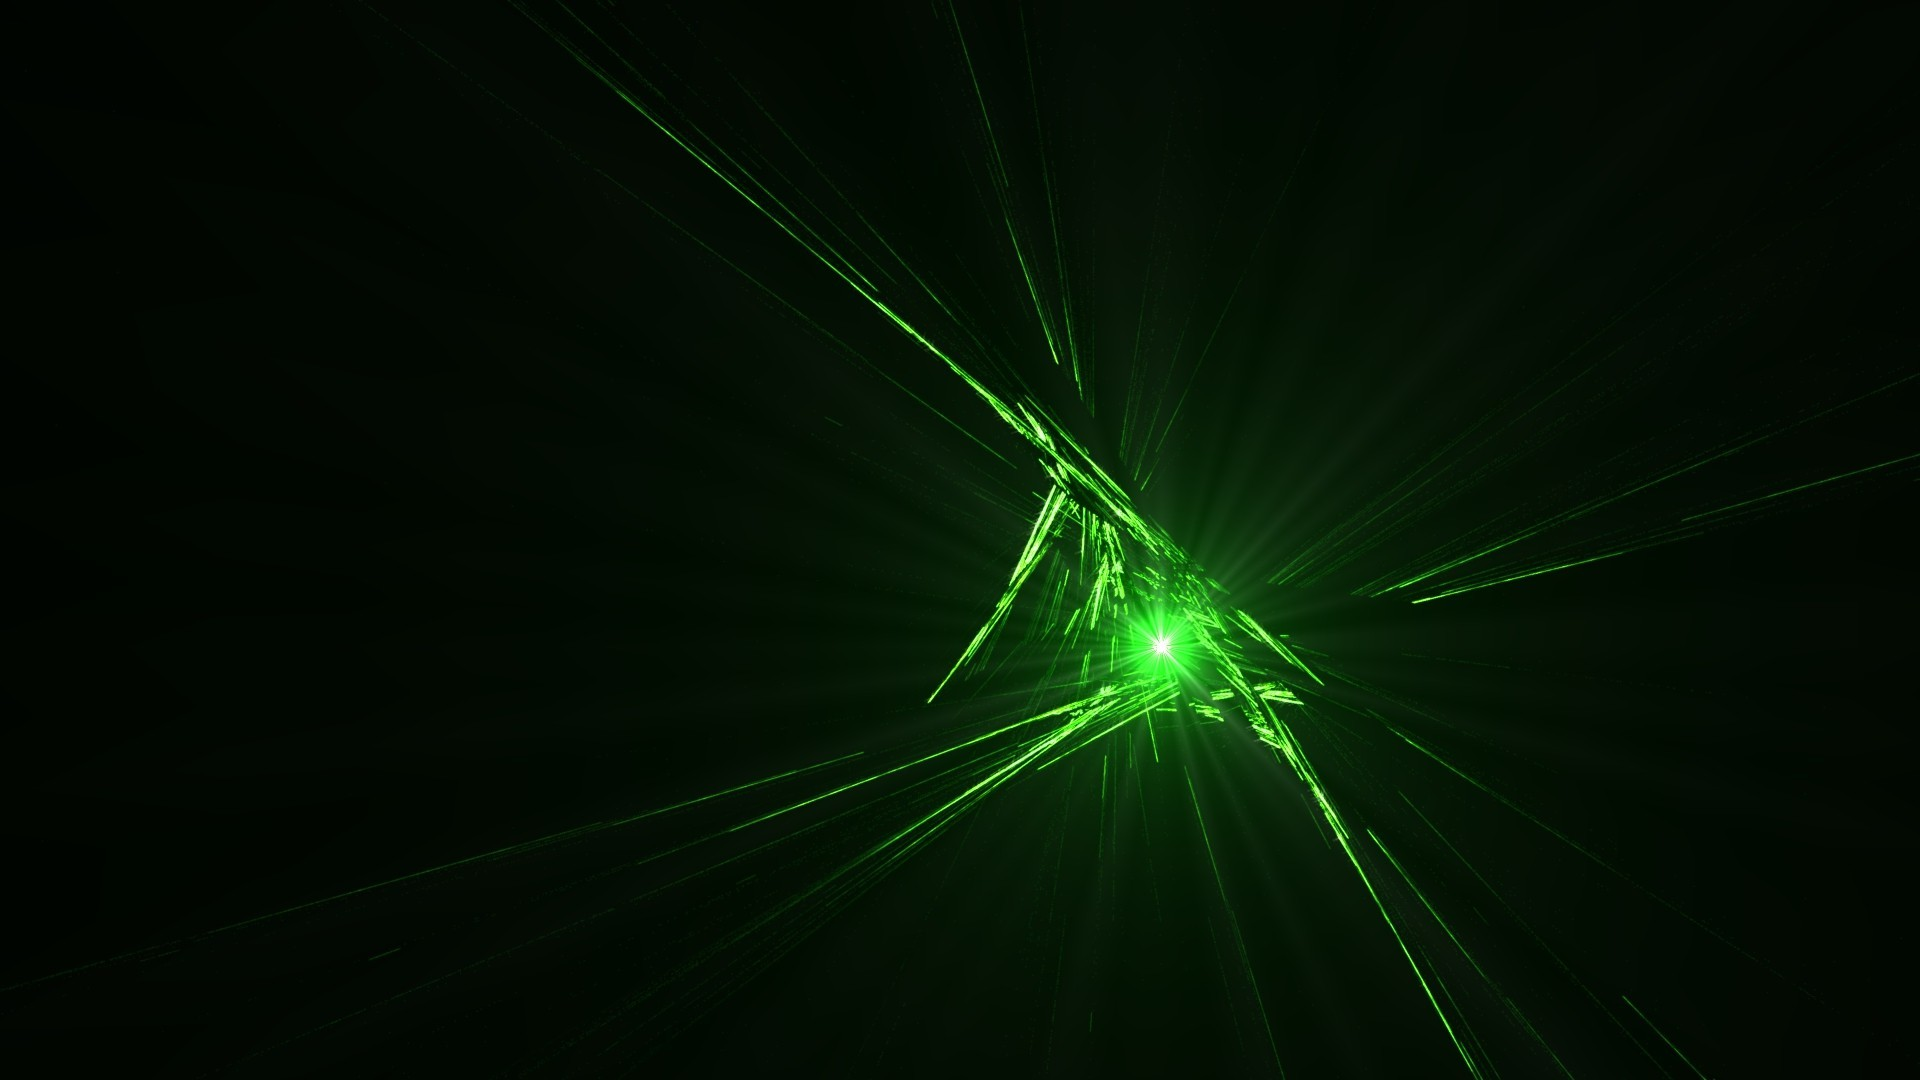 abstract, CGI, Green, Black, Beam Wallpapers HD / Desktop and Mobile  Backgrounds